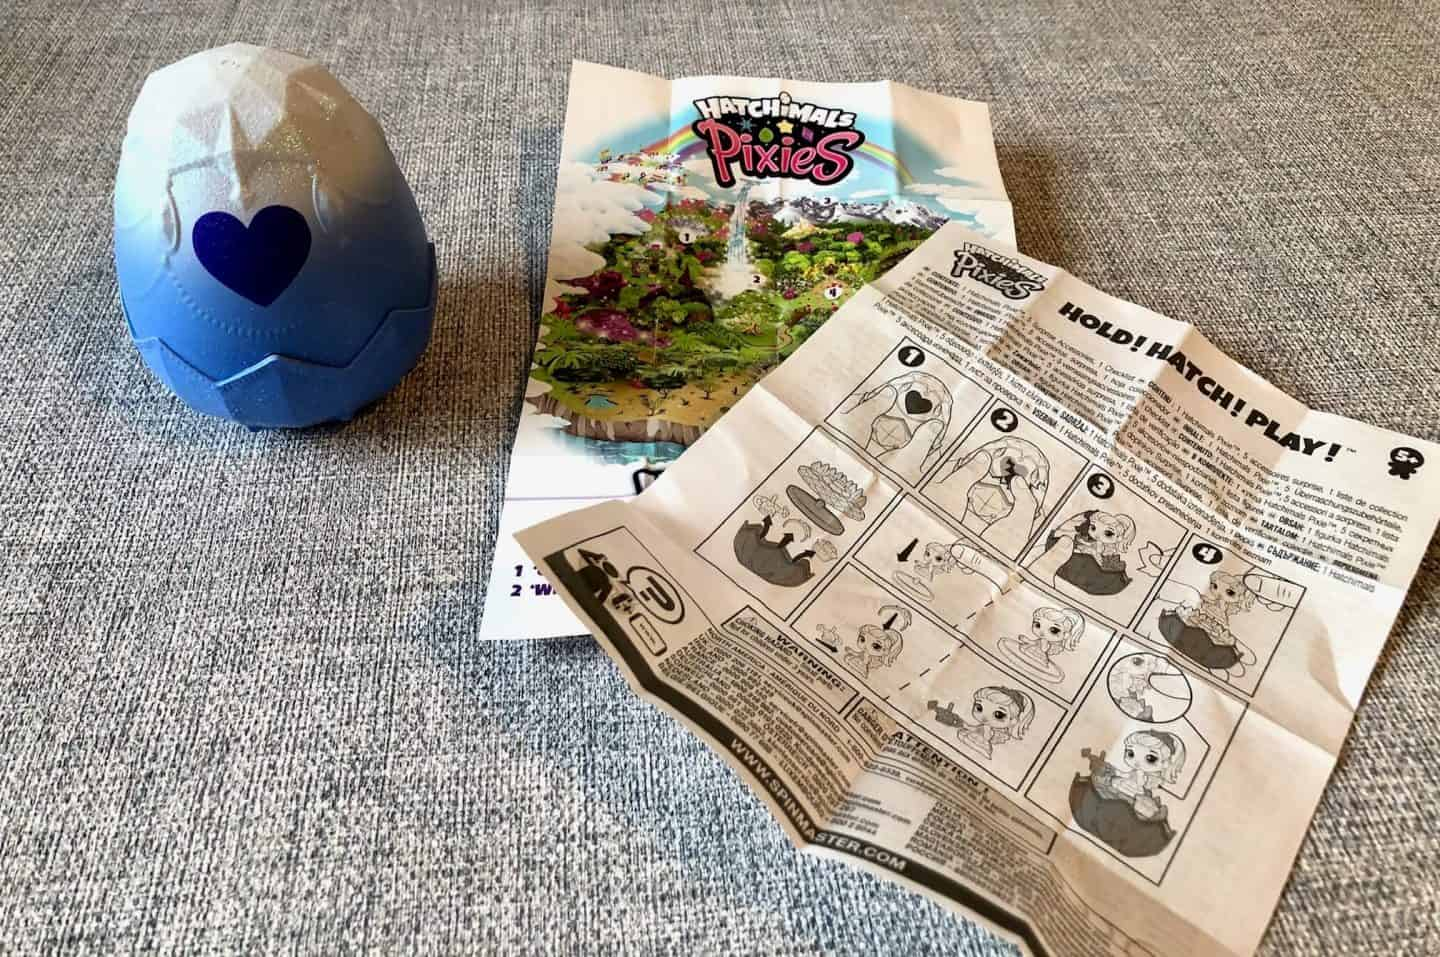 Introducing-Hatchimals-Pixies-instructions-and-checklist